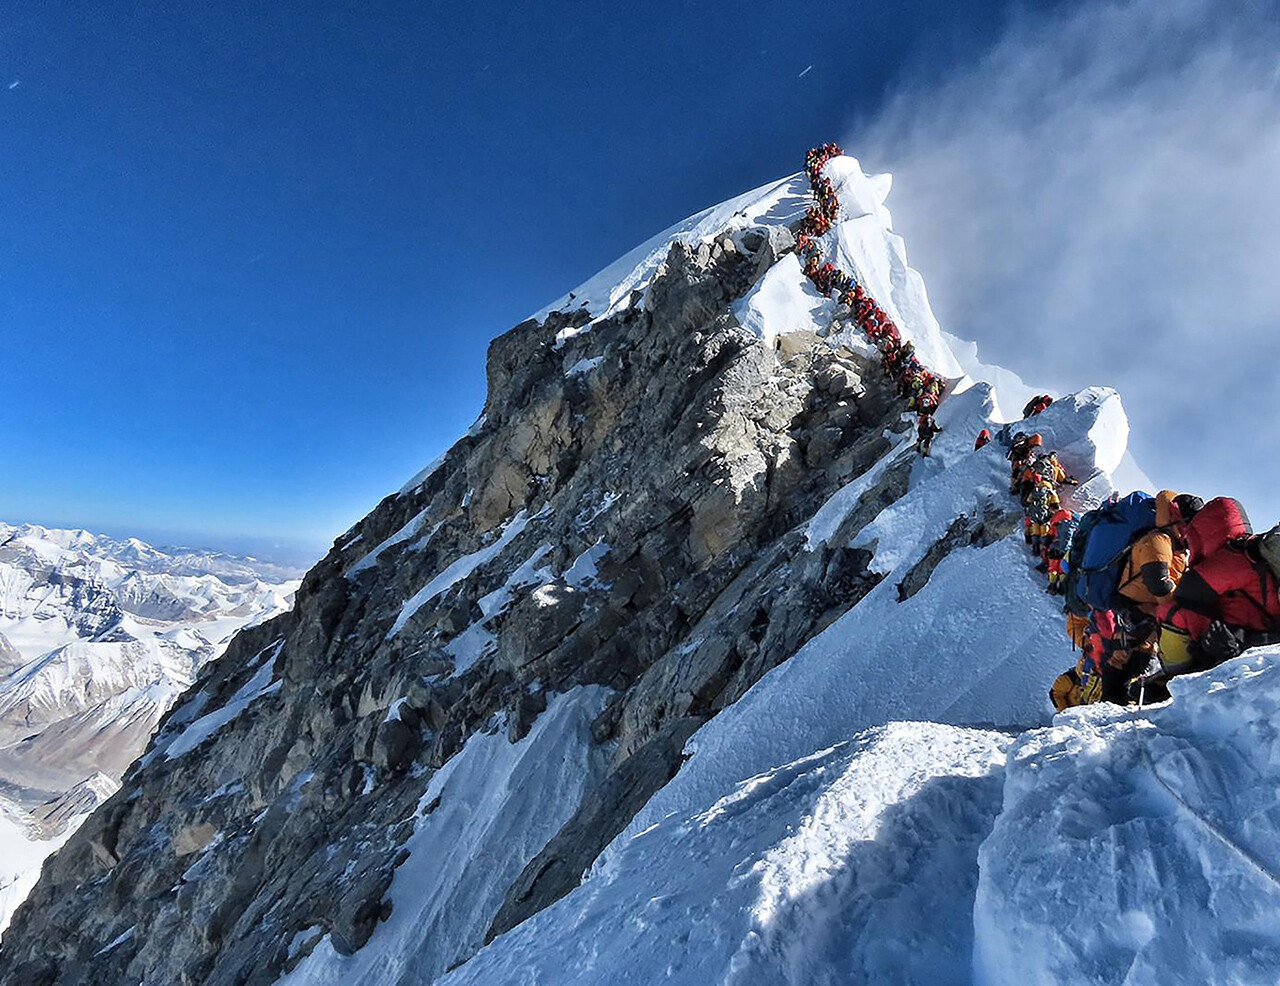 Climbers line up near the summit of Mount Everes.